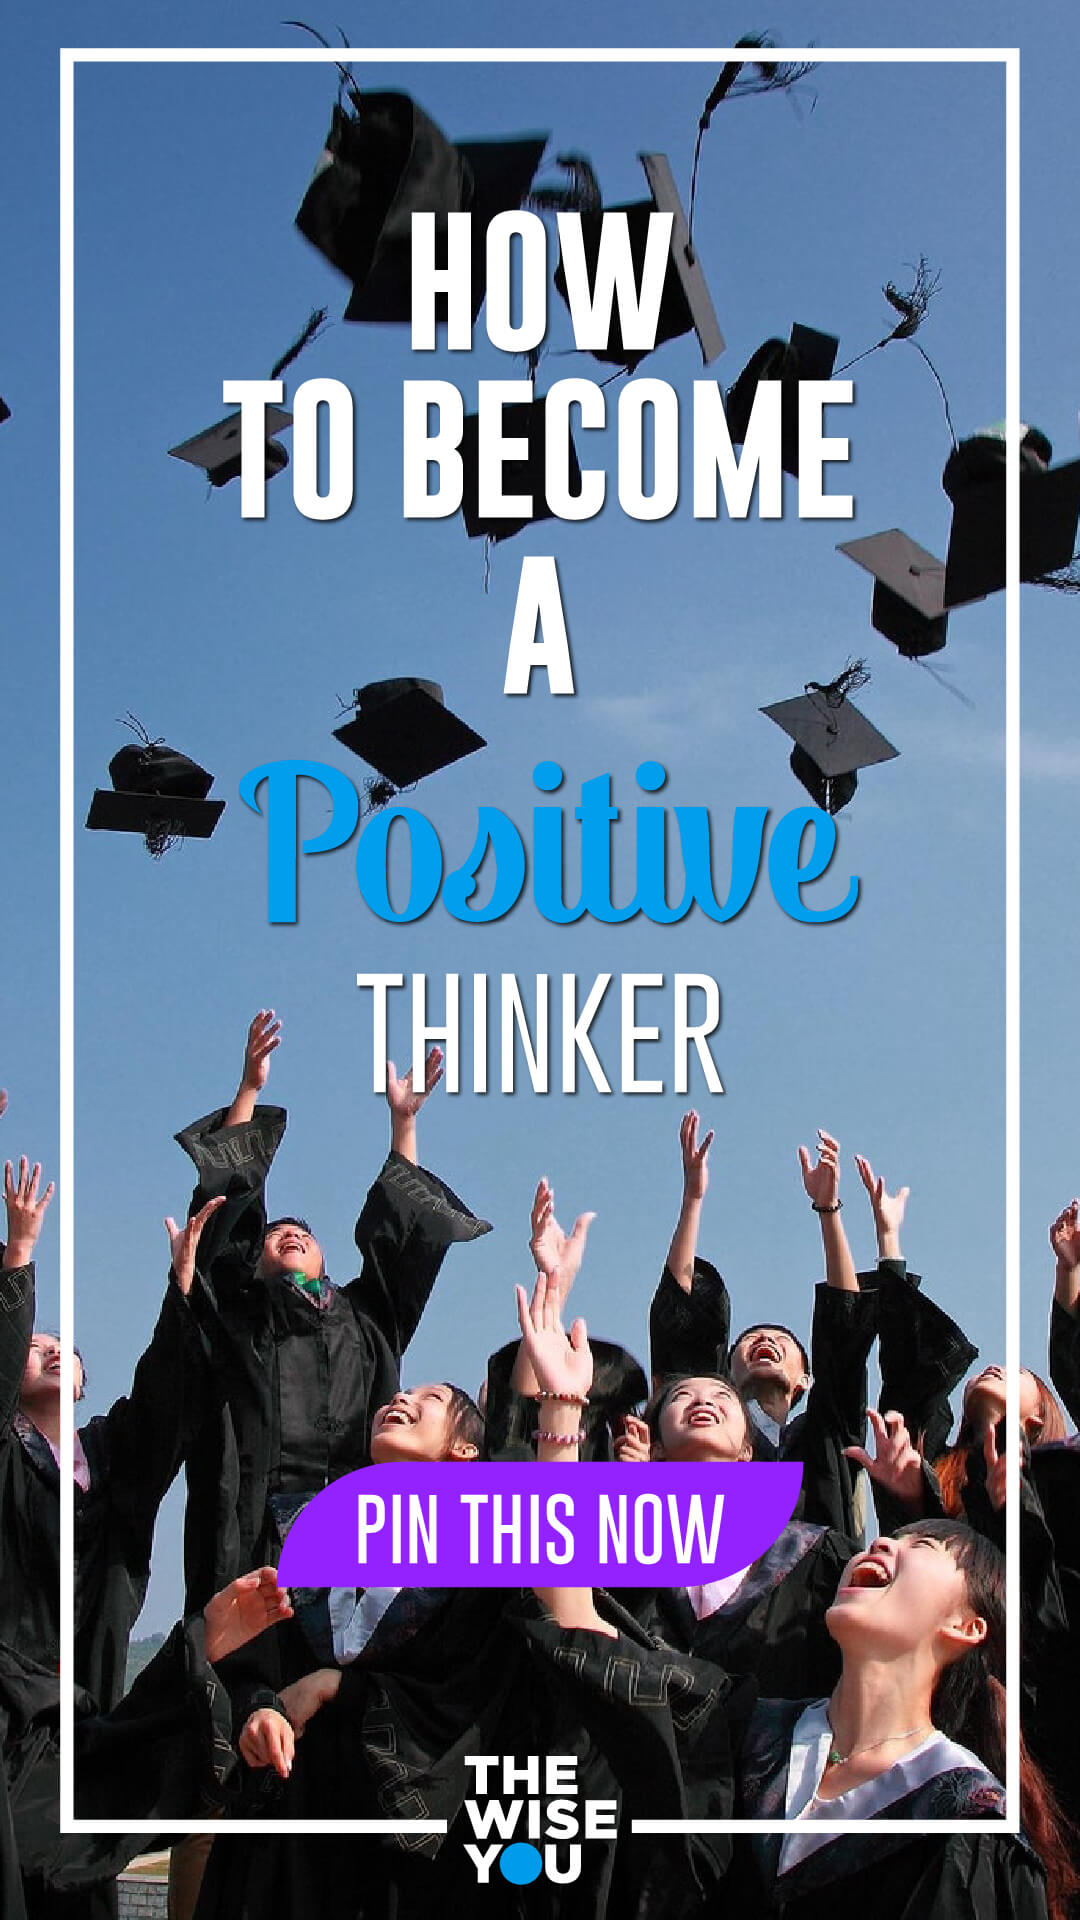 How to Become a Positive Thinker?